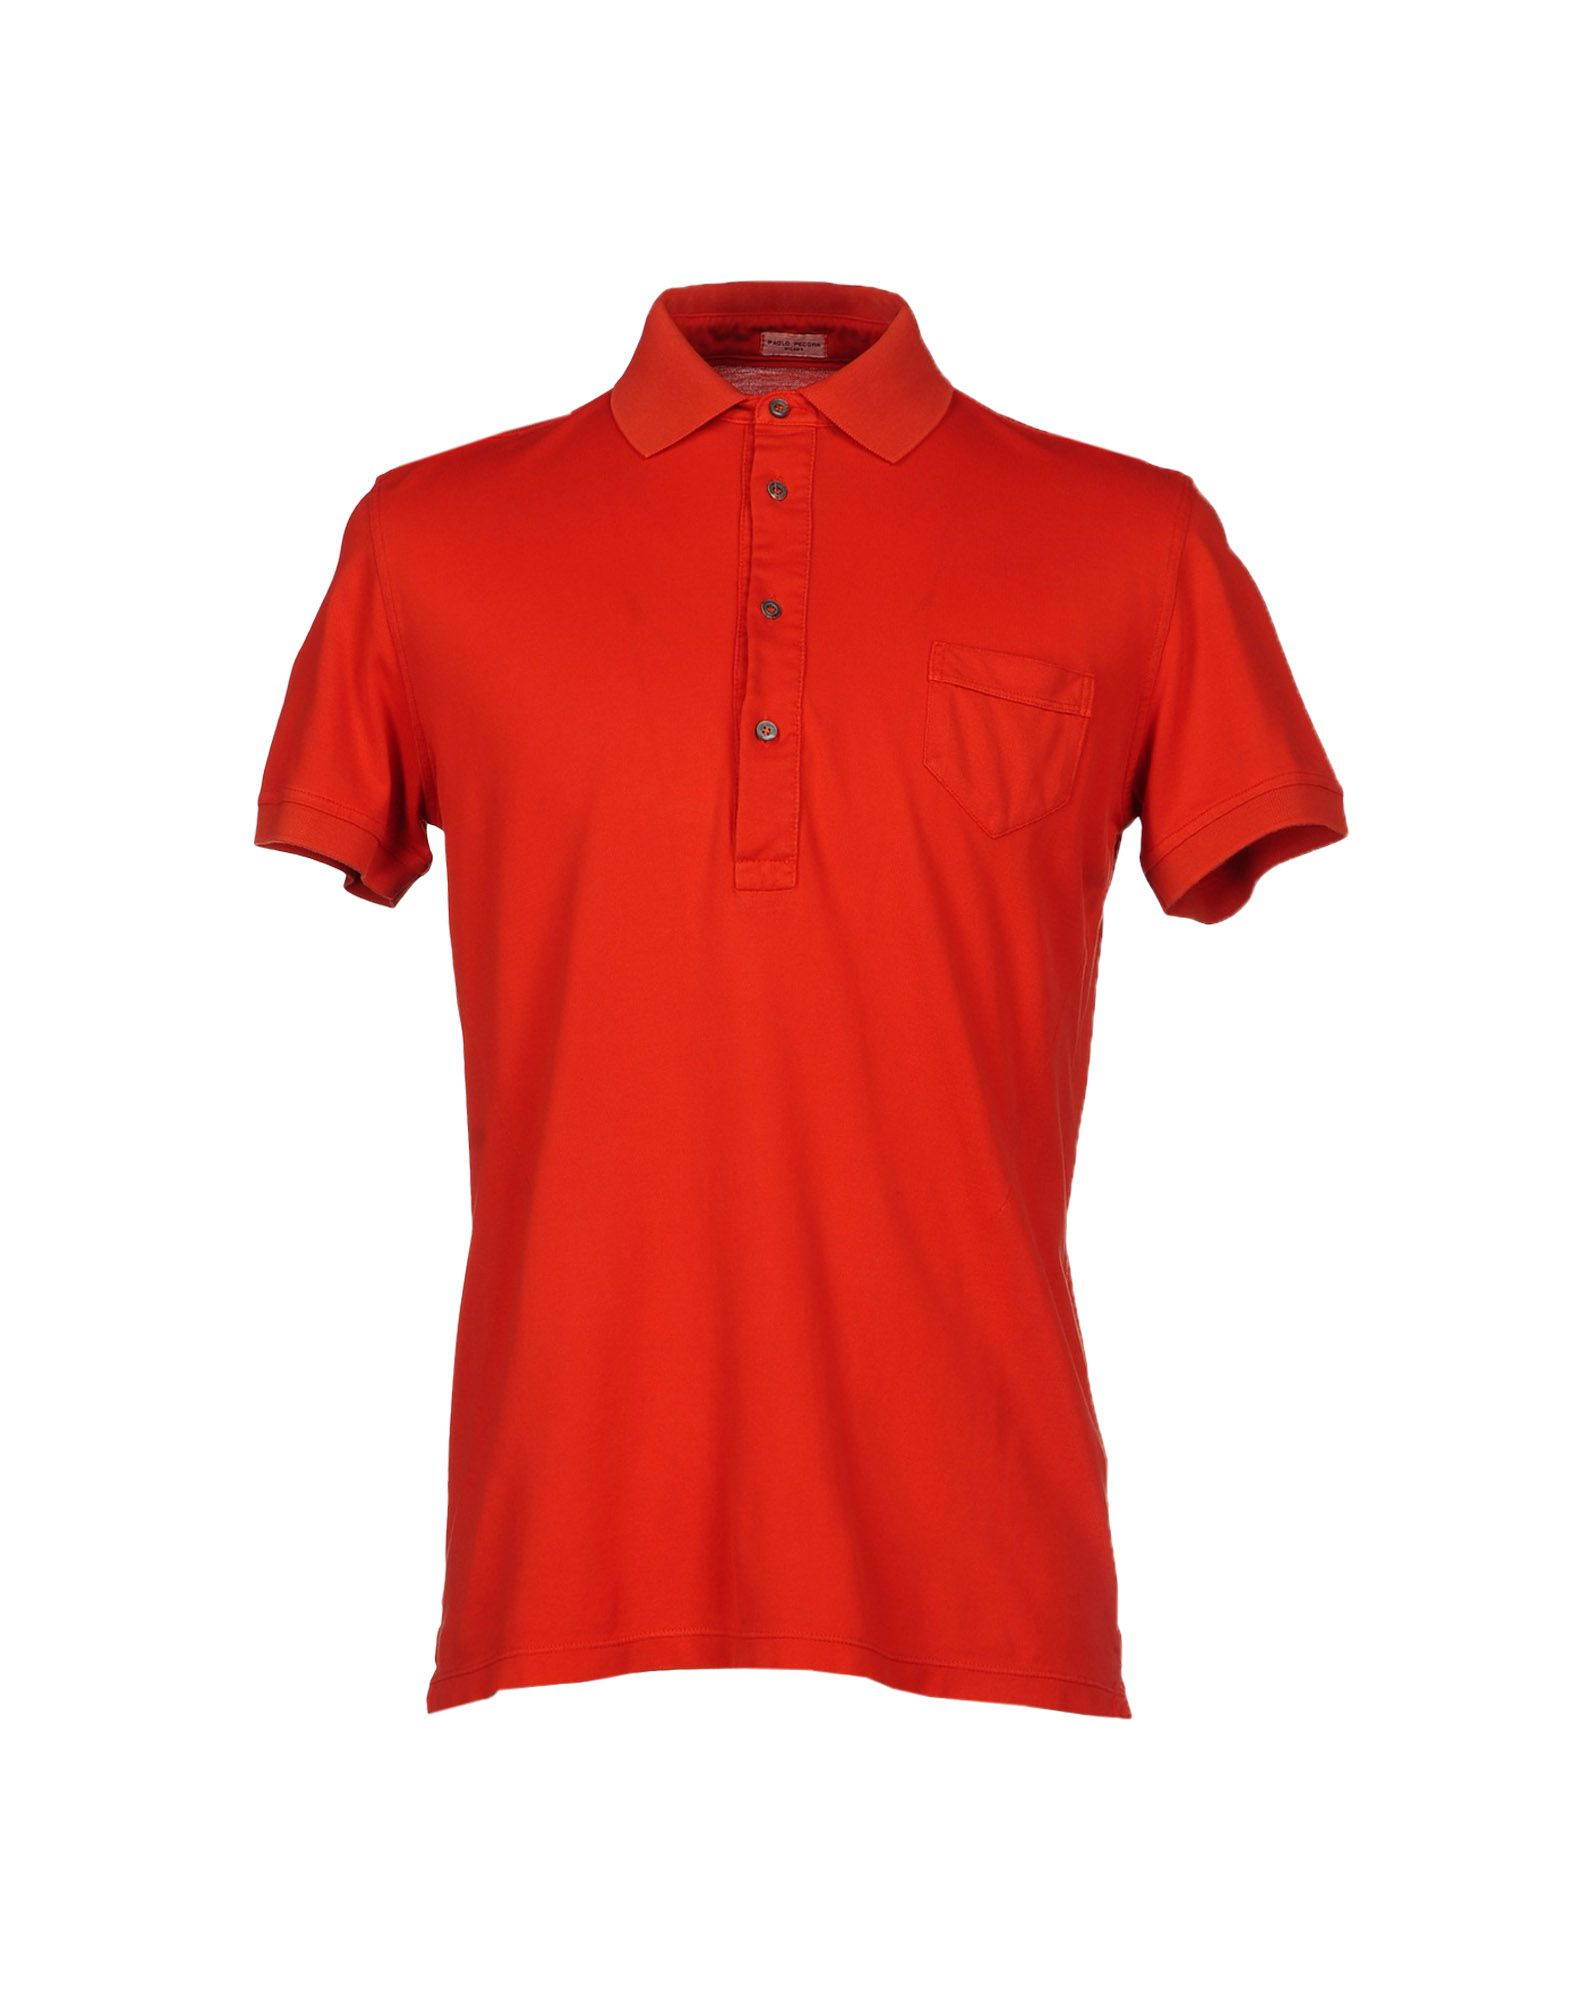 Shop your favorite polo colors and styles, now on sale. Buy mens casual and golf polos now.